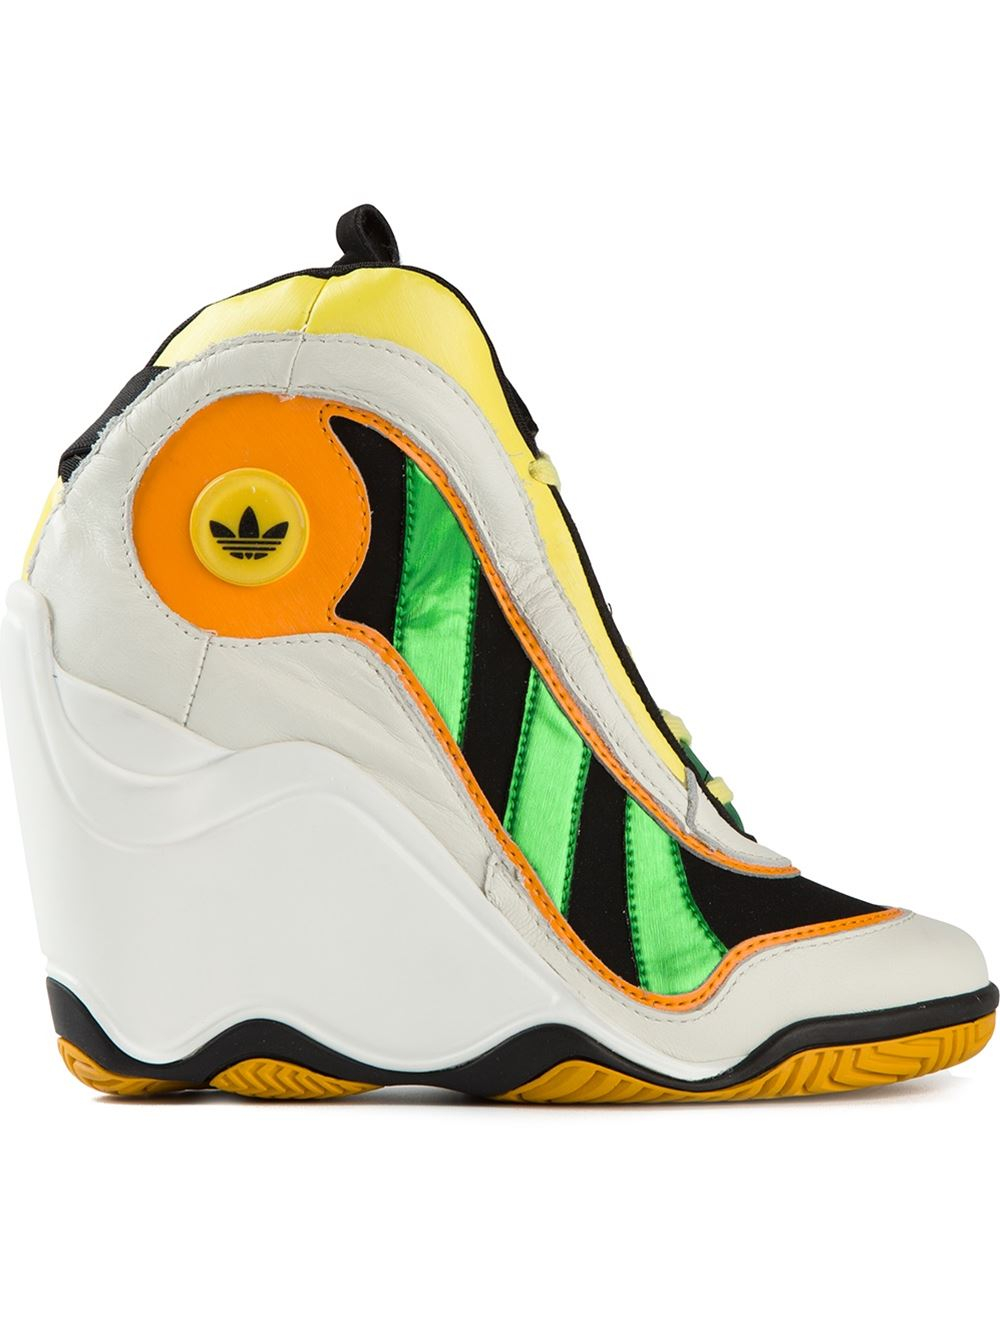 5d4f6292984 Lyst - Jeremy Scott for adidas JS Crazy 97 Sneakers in White